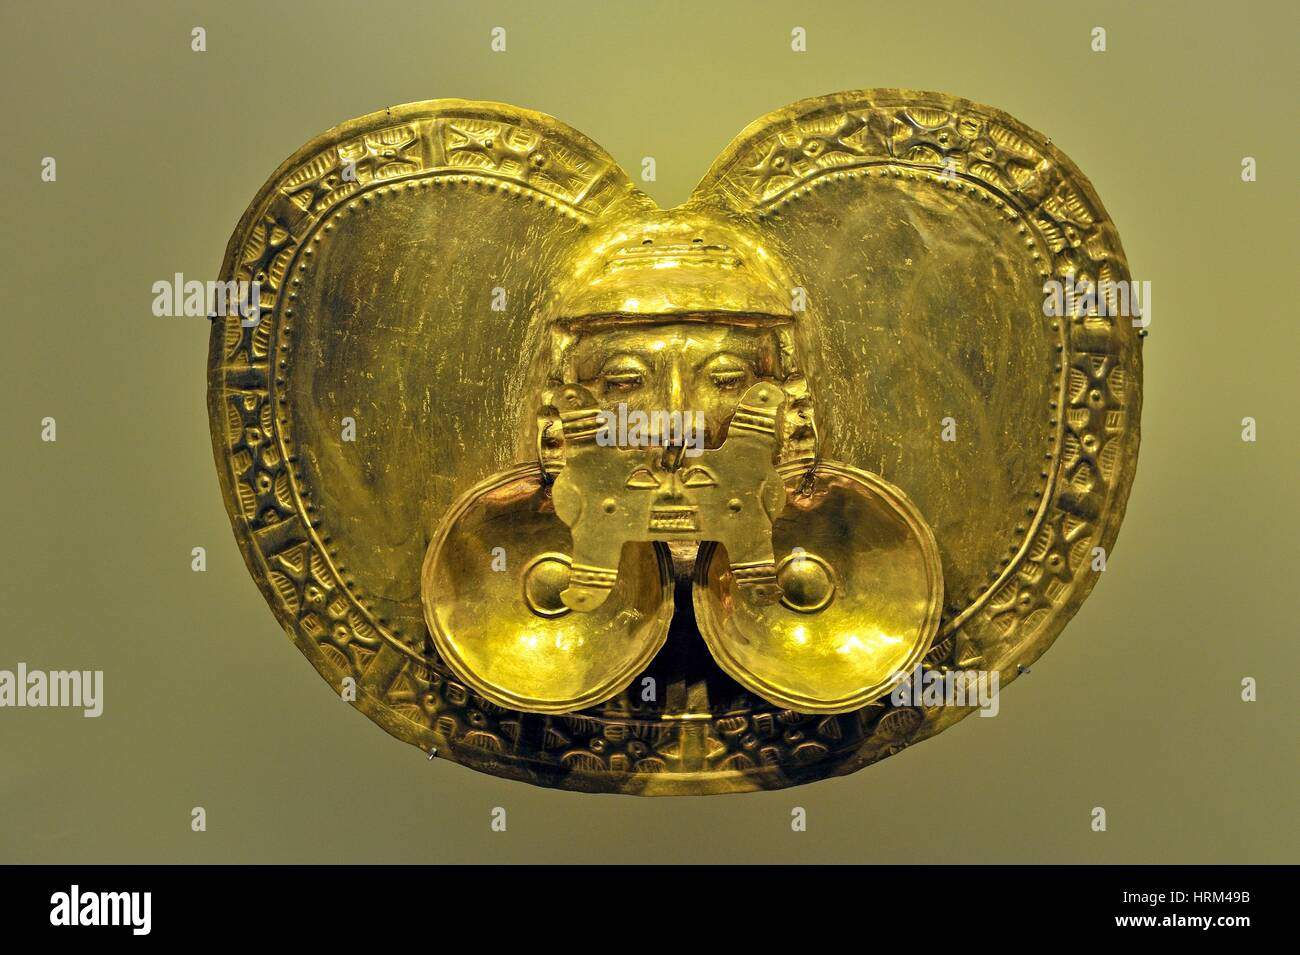 golden pectoral, pre-Hispanic gold work, Gold Museum, Bogota, Colombia, South America. - Stock Image